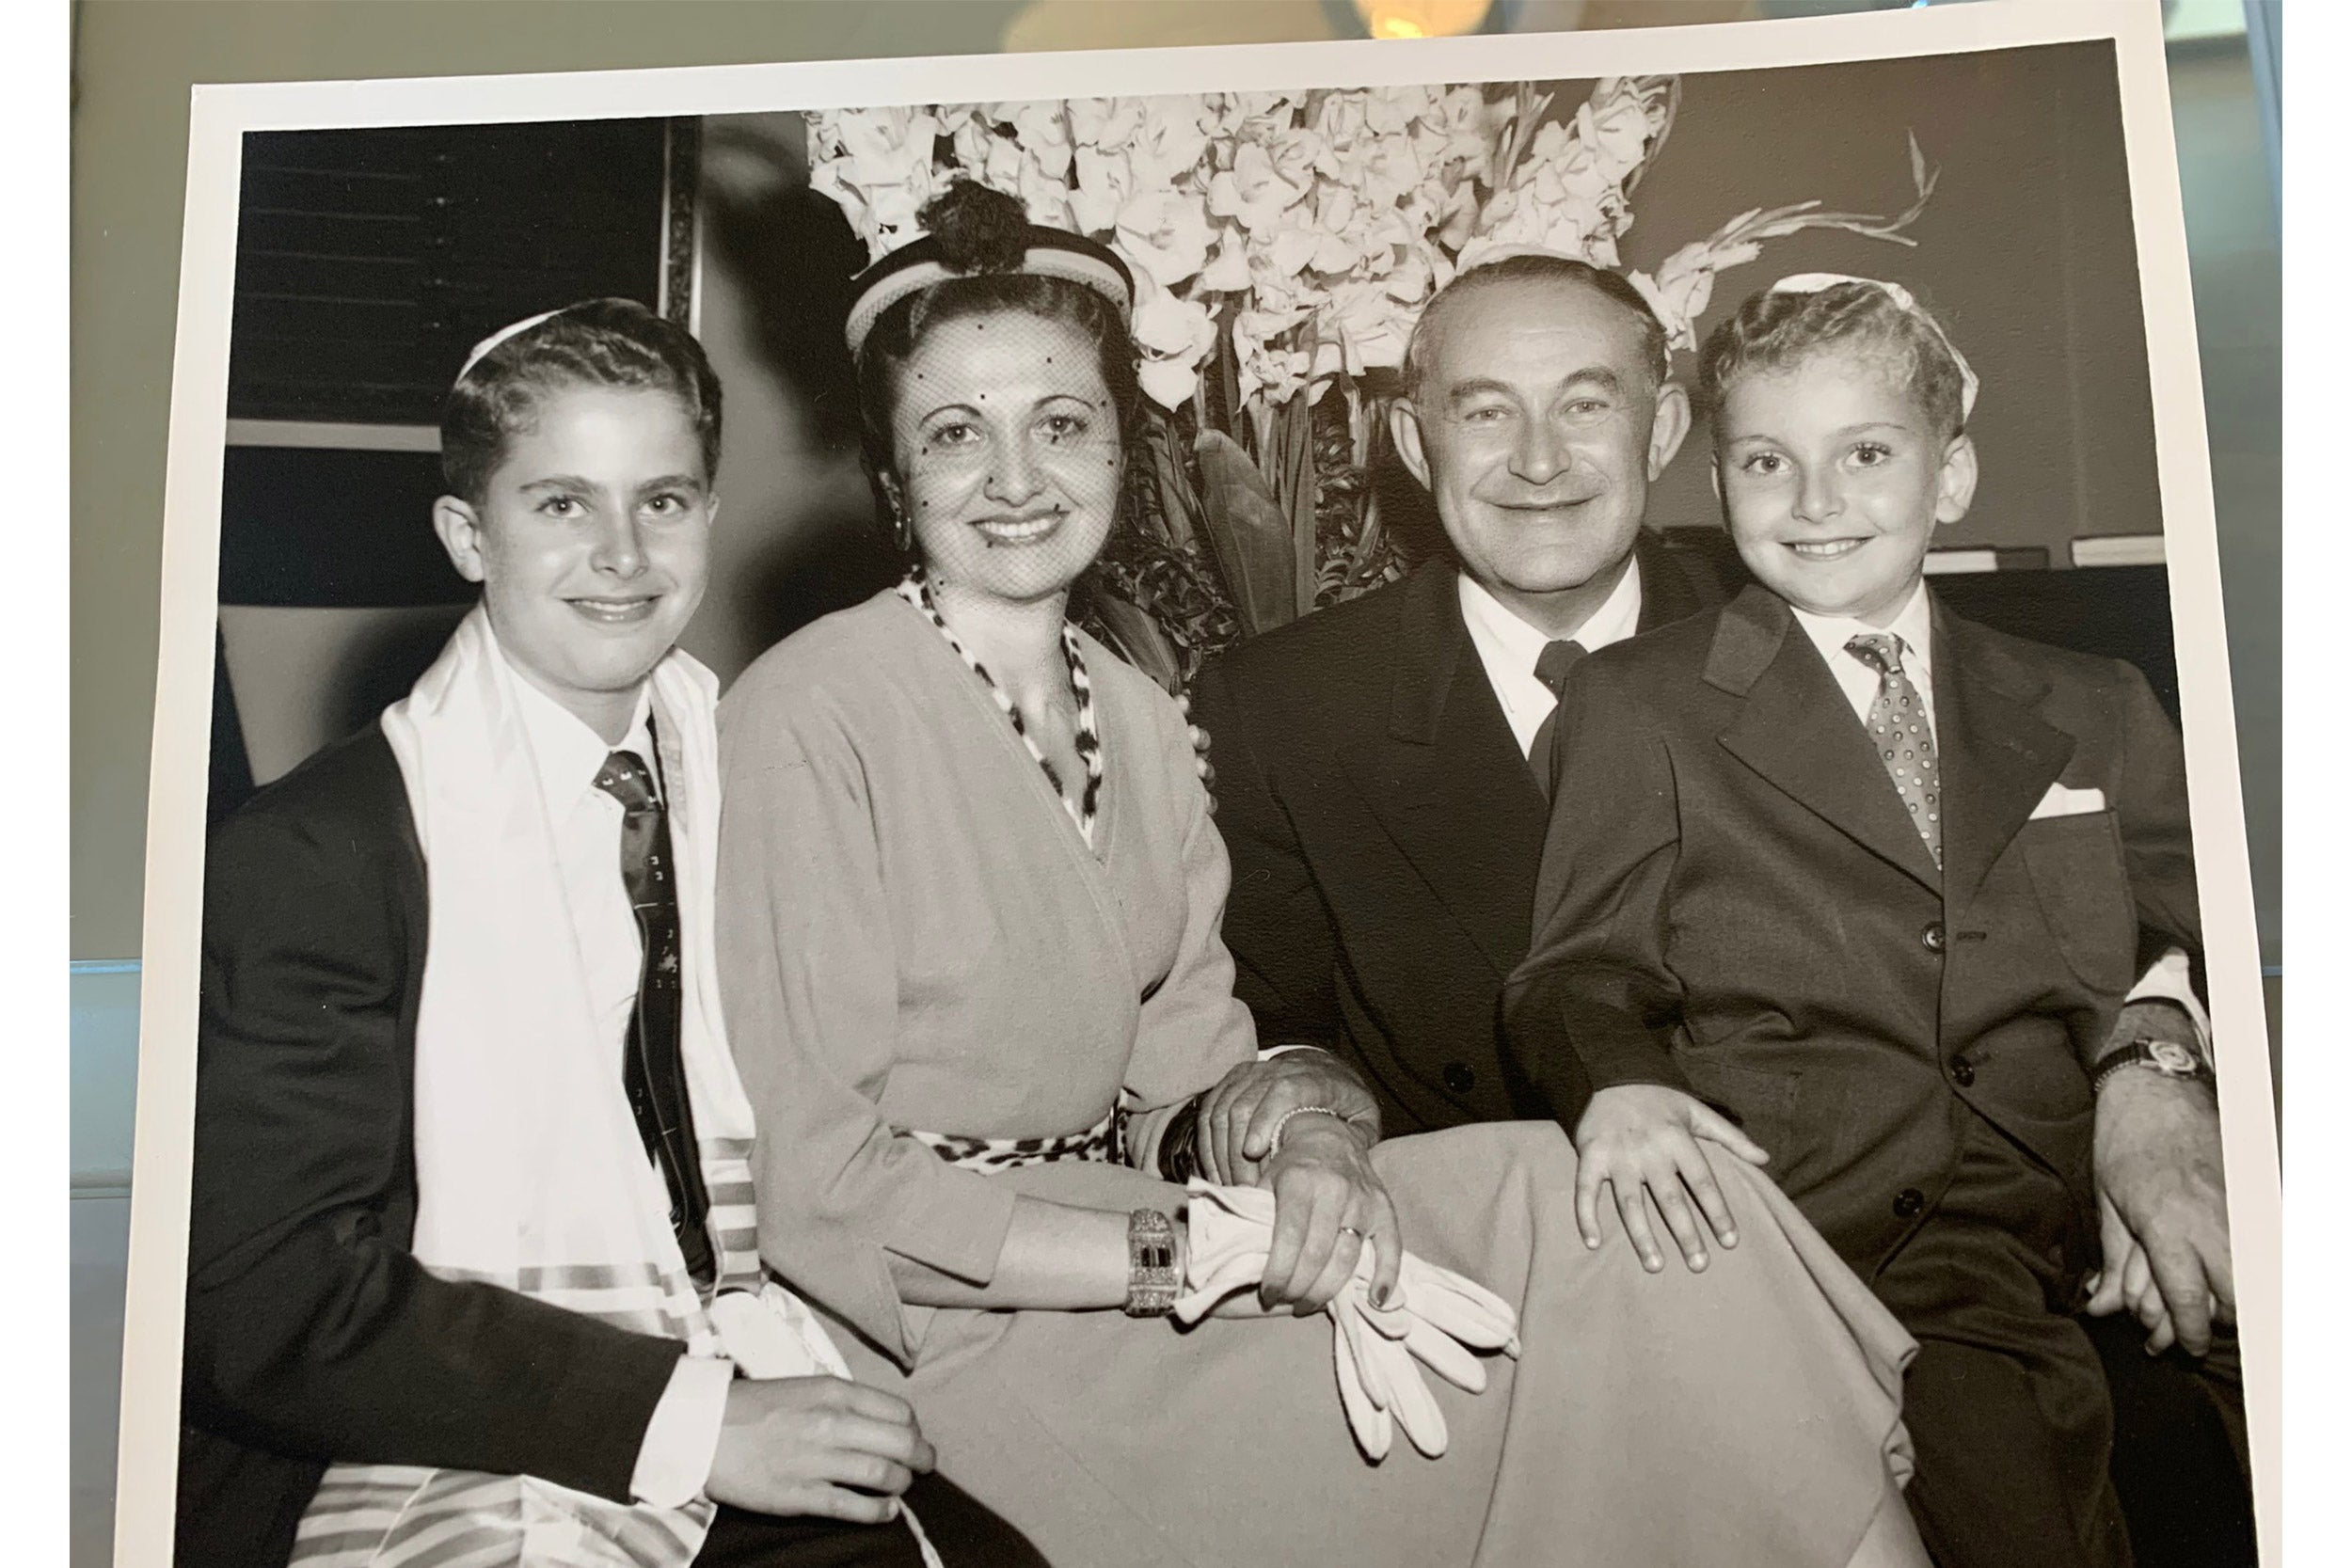 Larry Tribe with his family.